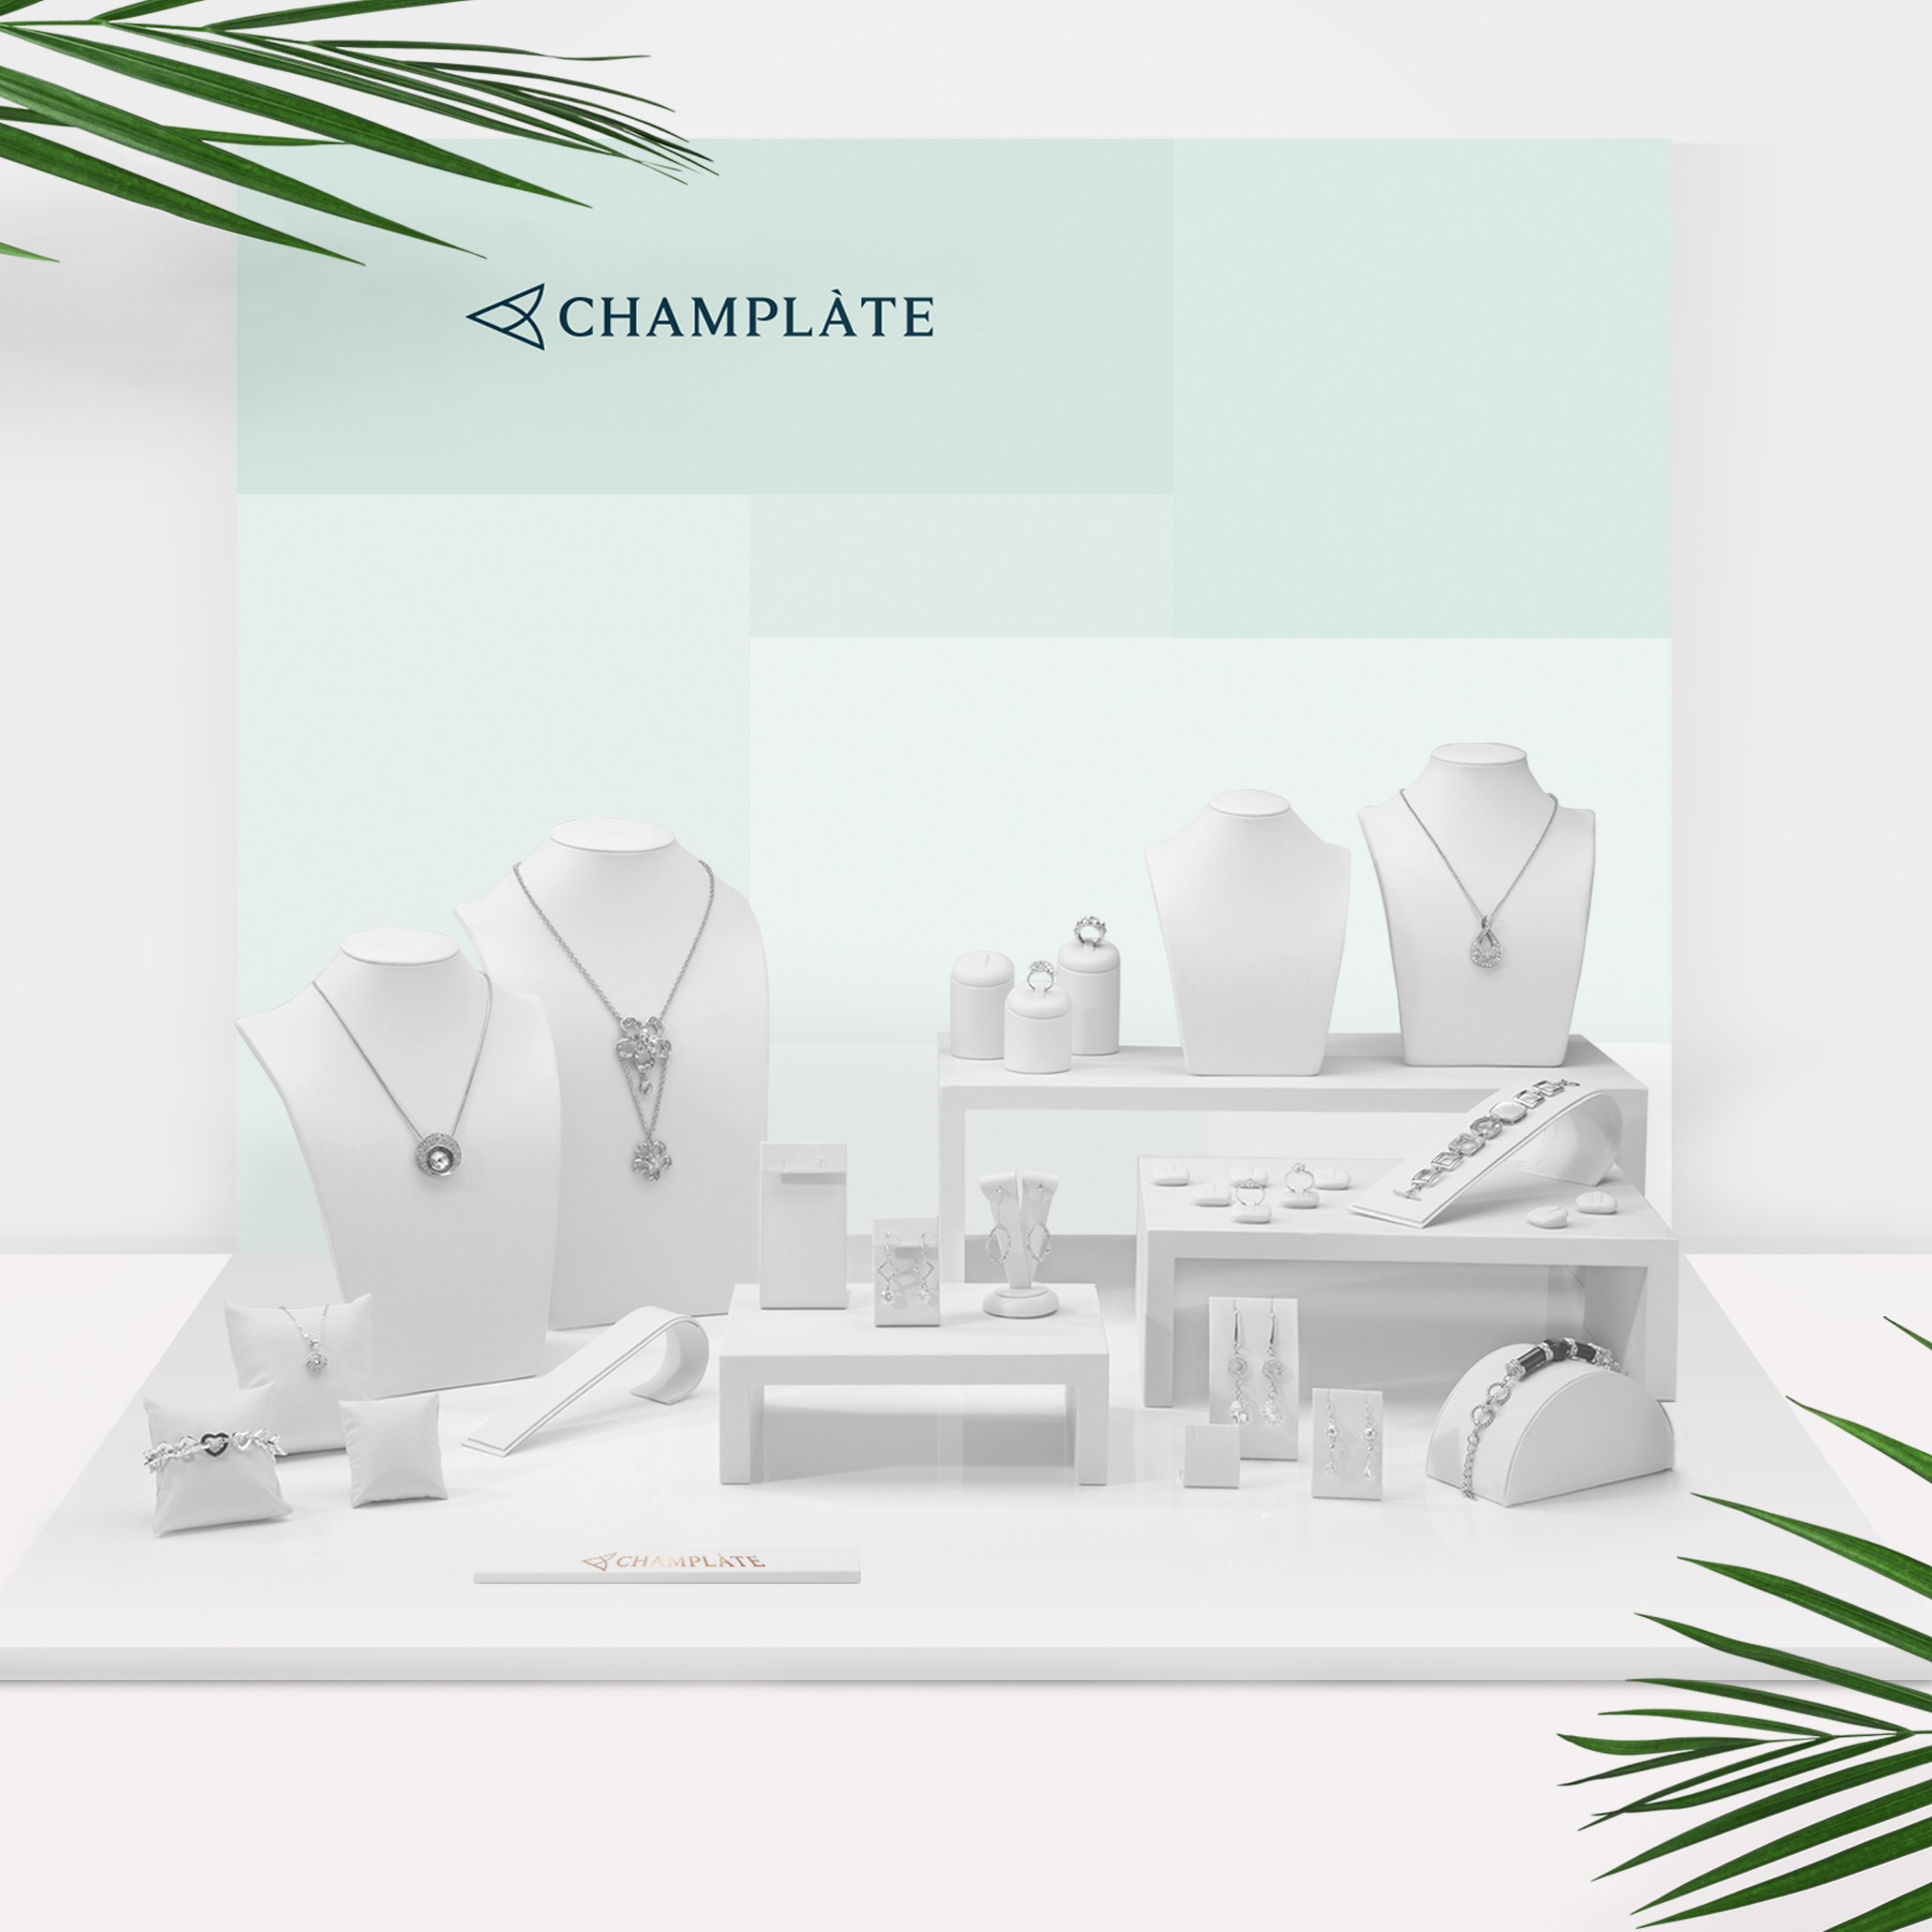 Champlate, Project Img 8 - Vatra Agency / Founder & CEO Gerton Bejo